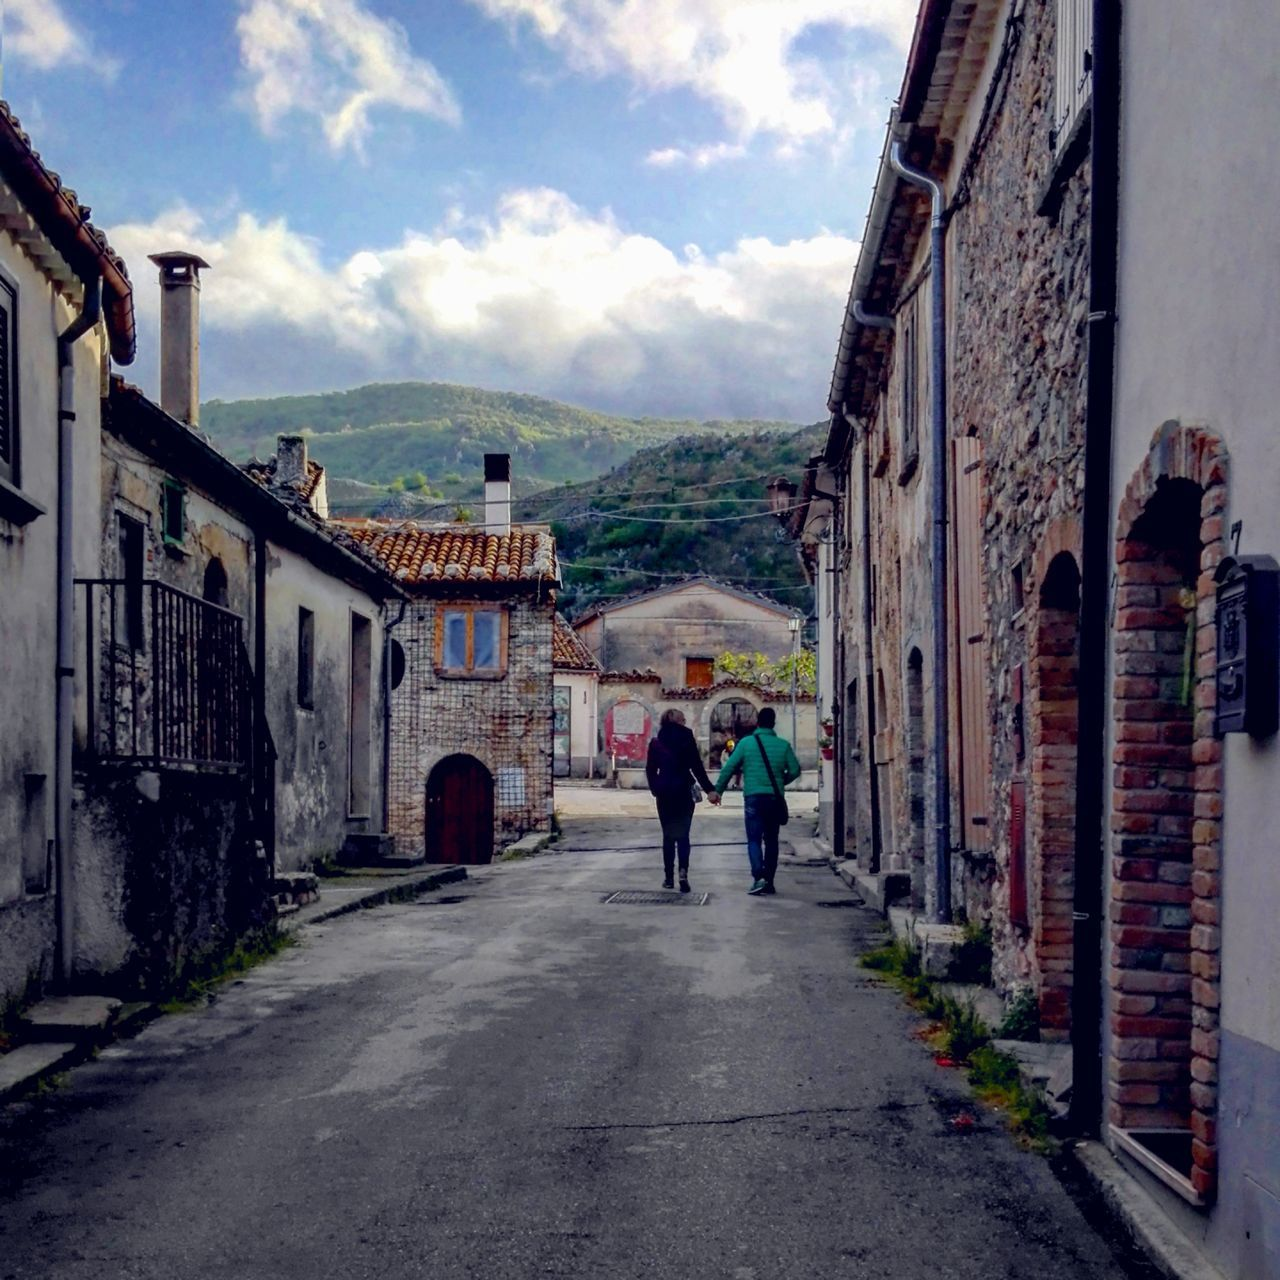 Civita di Bojano (Campobasso, Italy) Adult People Cloud - Sky Sky Outdoors Real People Couple Couple - Relationship Relationship Love People People And Places Walking Walking Hand In Hand Hand In Hand Landscape Village Green Molise Civita Di Bojano Trees Trees And Sky Lovephotography  Lovers Tranquility The Great Outdoors - 2017 EyeEm Awards The Street Photographer - 2017 EyeEm Awards